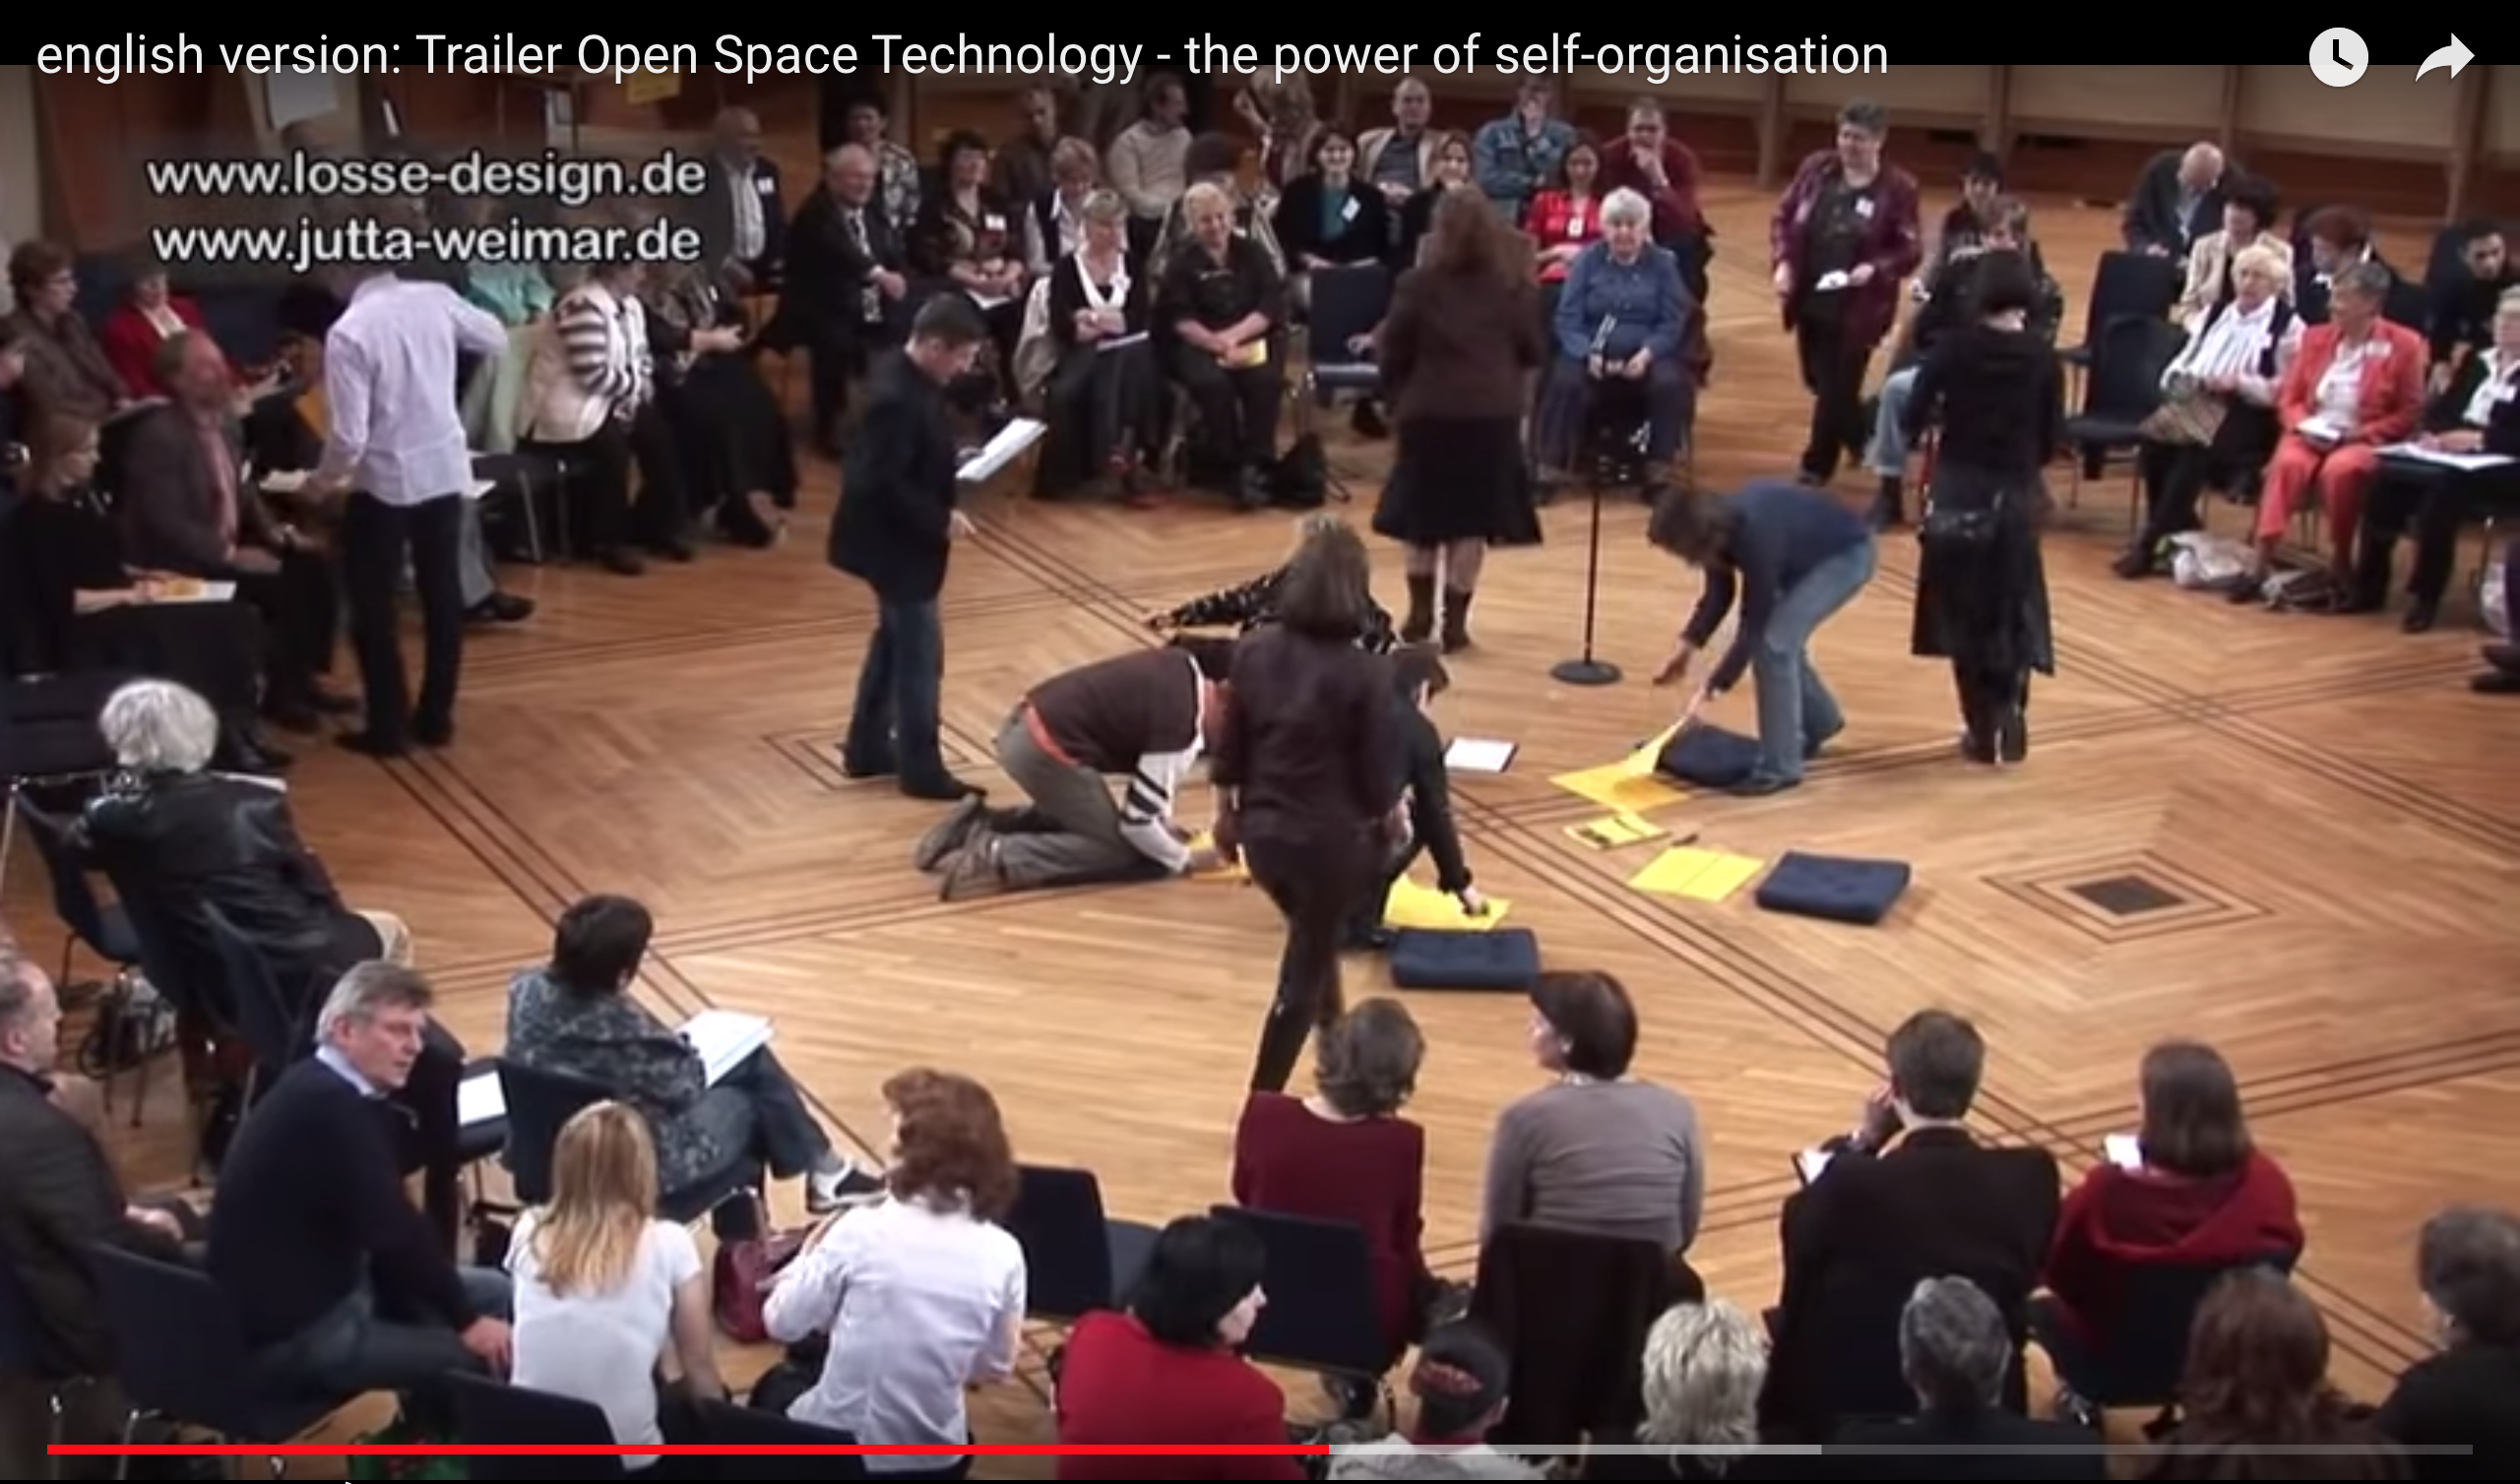 Open Space Technology The power of self organization